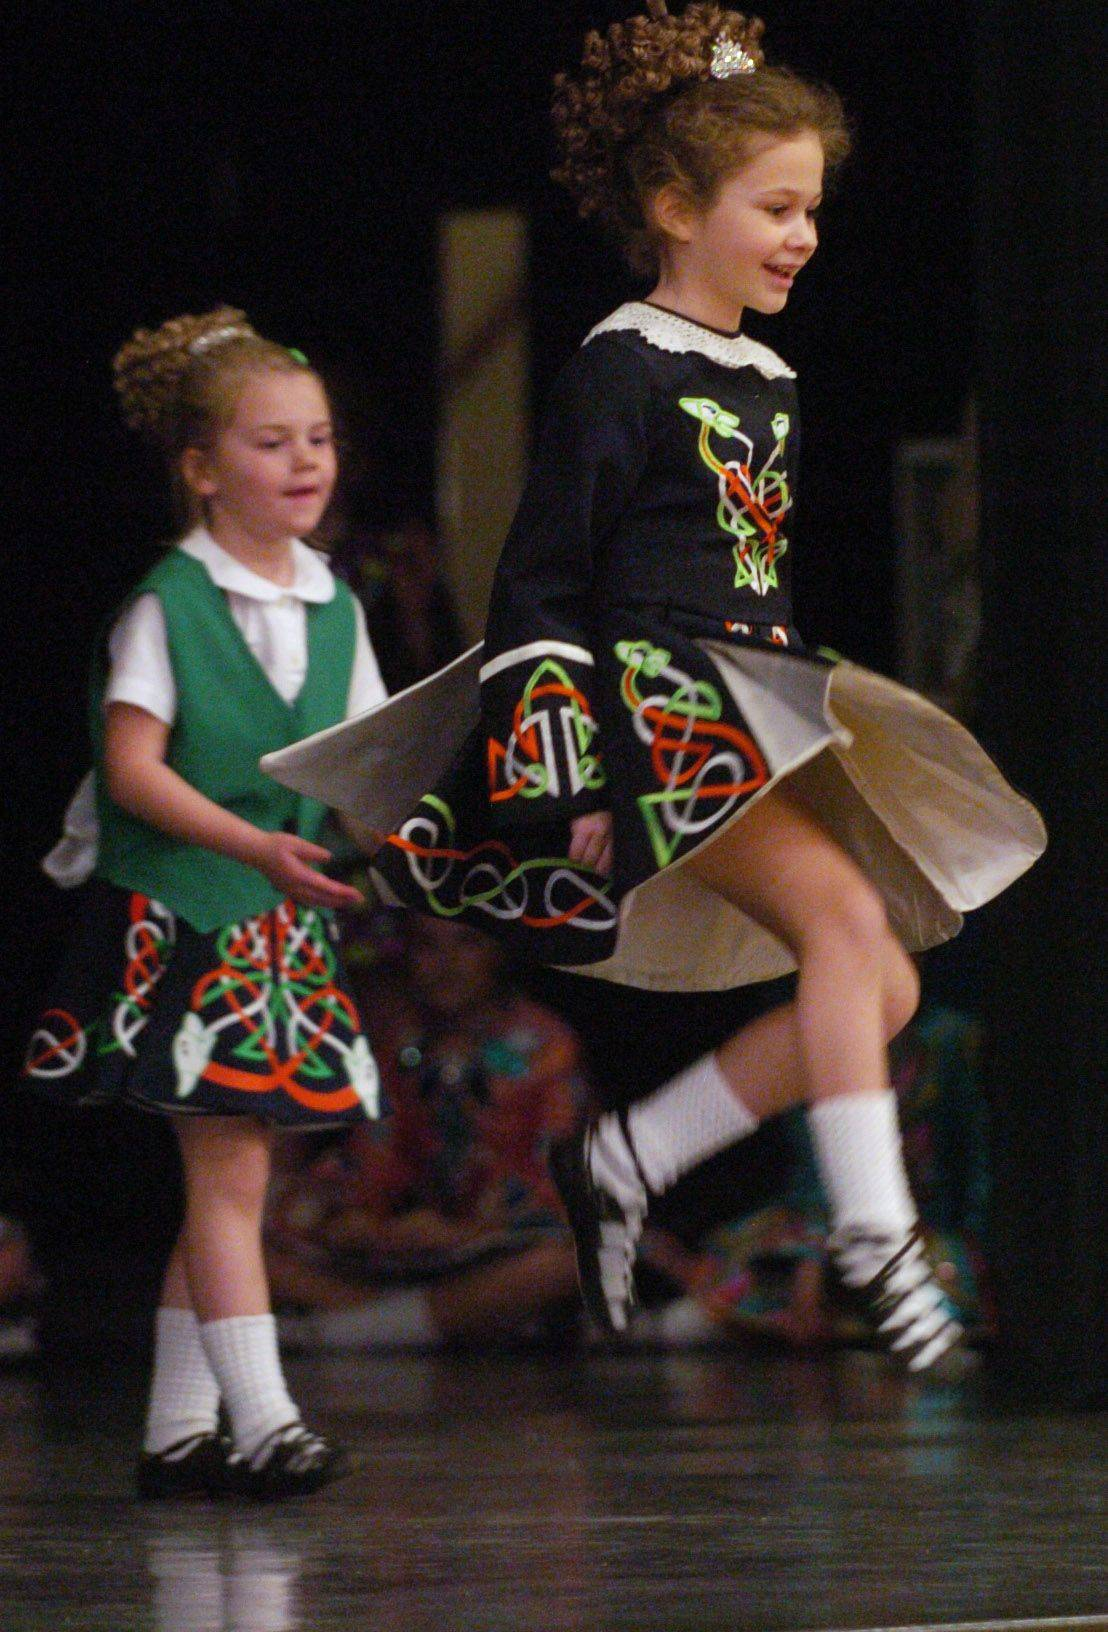 Bridgett O'Grady, 7, right, and Margaret Lennon, 6, both of Arlington Heights, perform with the Mullane-Healy-Godley School of Irish Dance at St. James School in Arlington Heights.